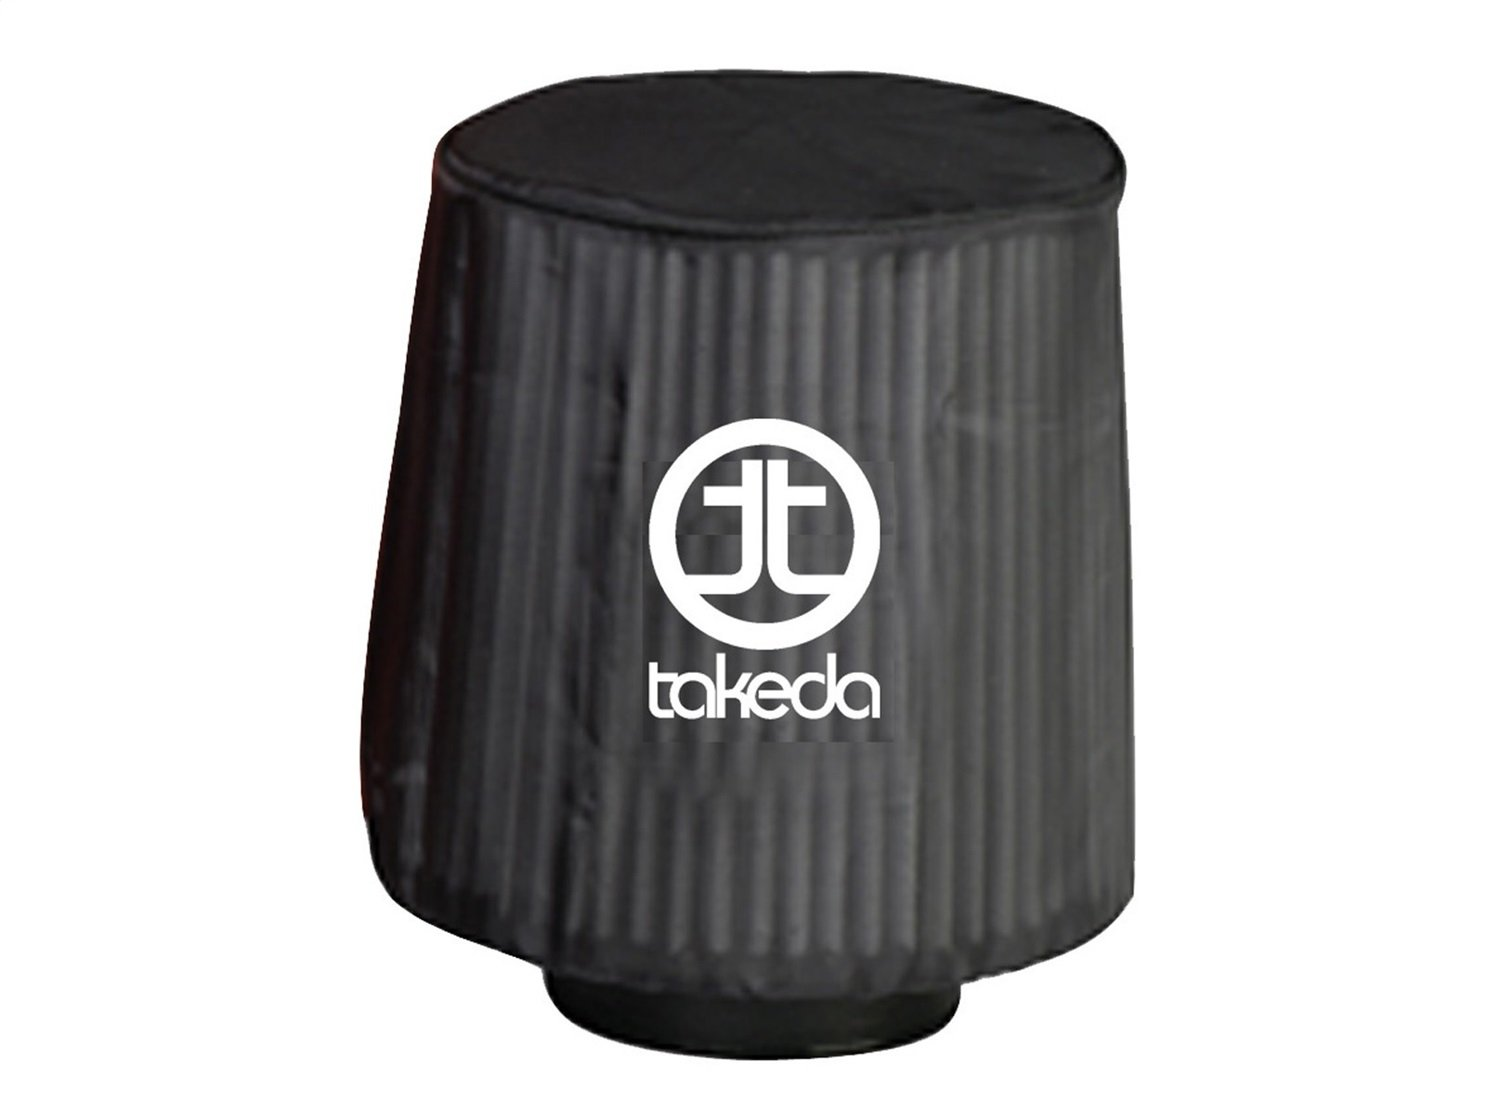 aFe TP-7011B Takeda Pre-Filter Black